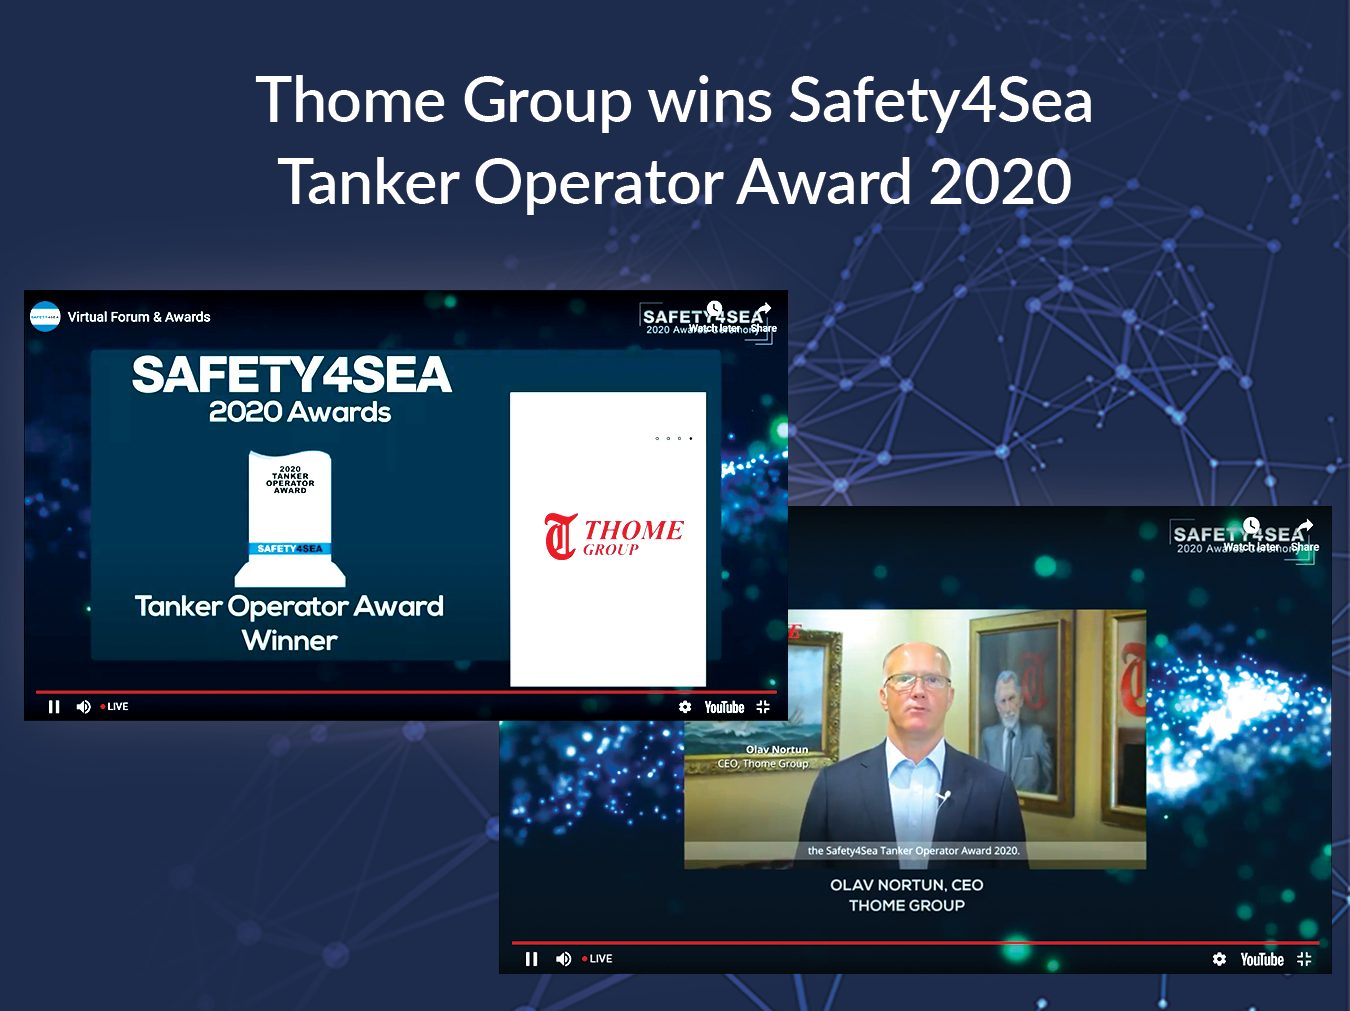 Thome Group Wins Safety4Sea Tanker Operator Award